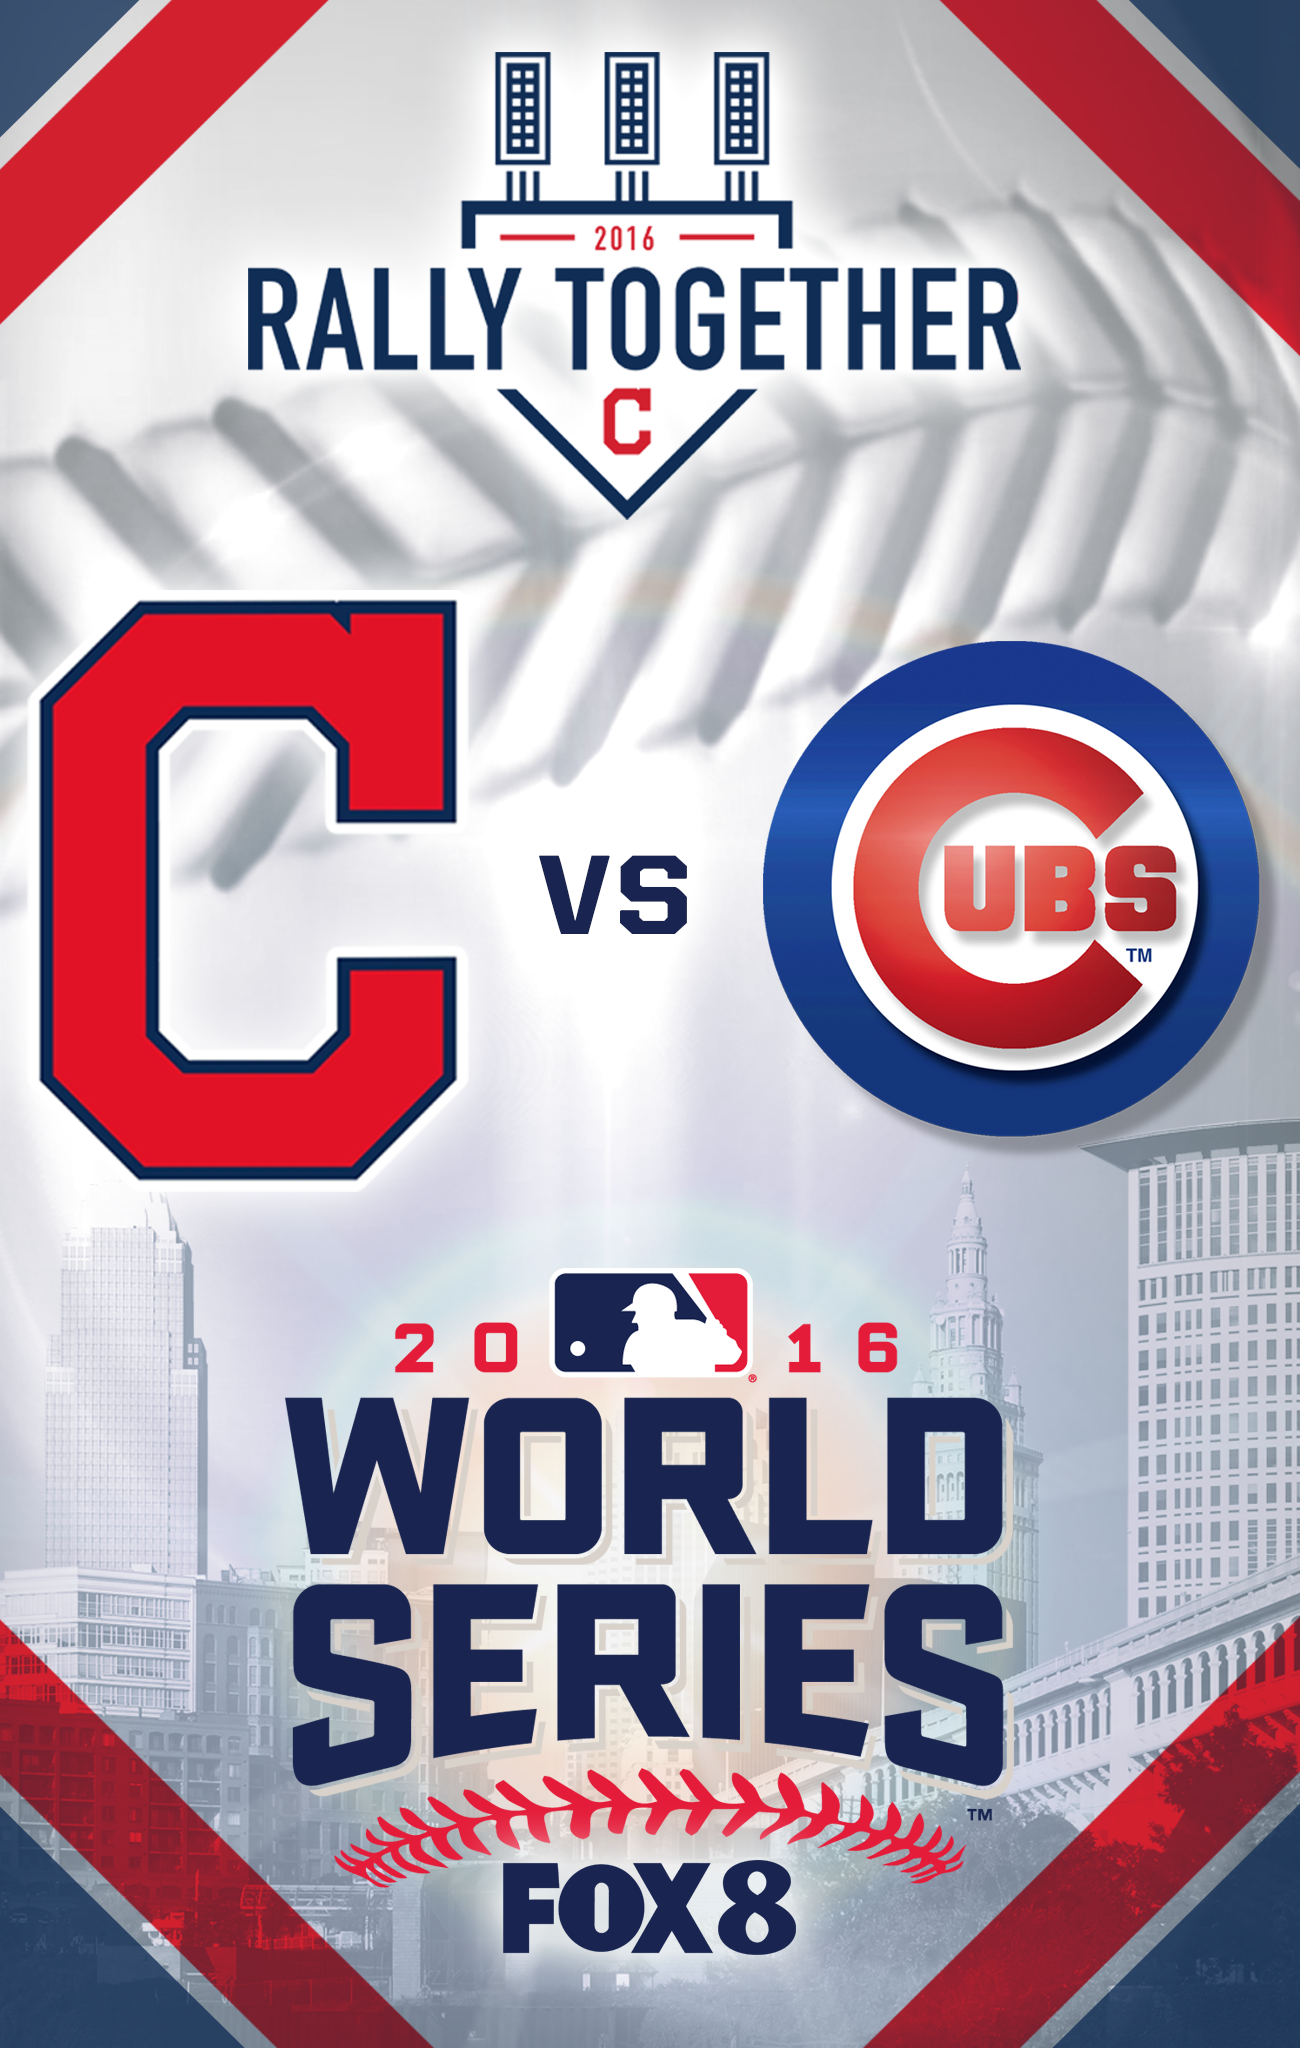 World Series on FOX 8